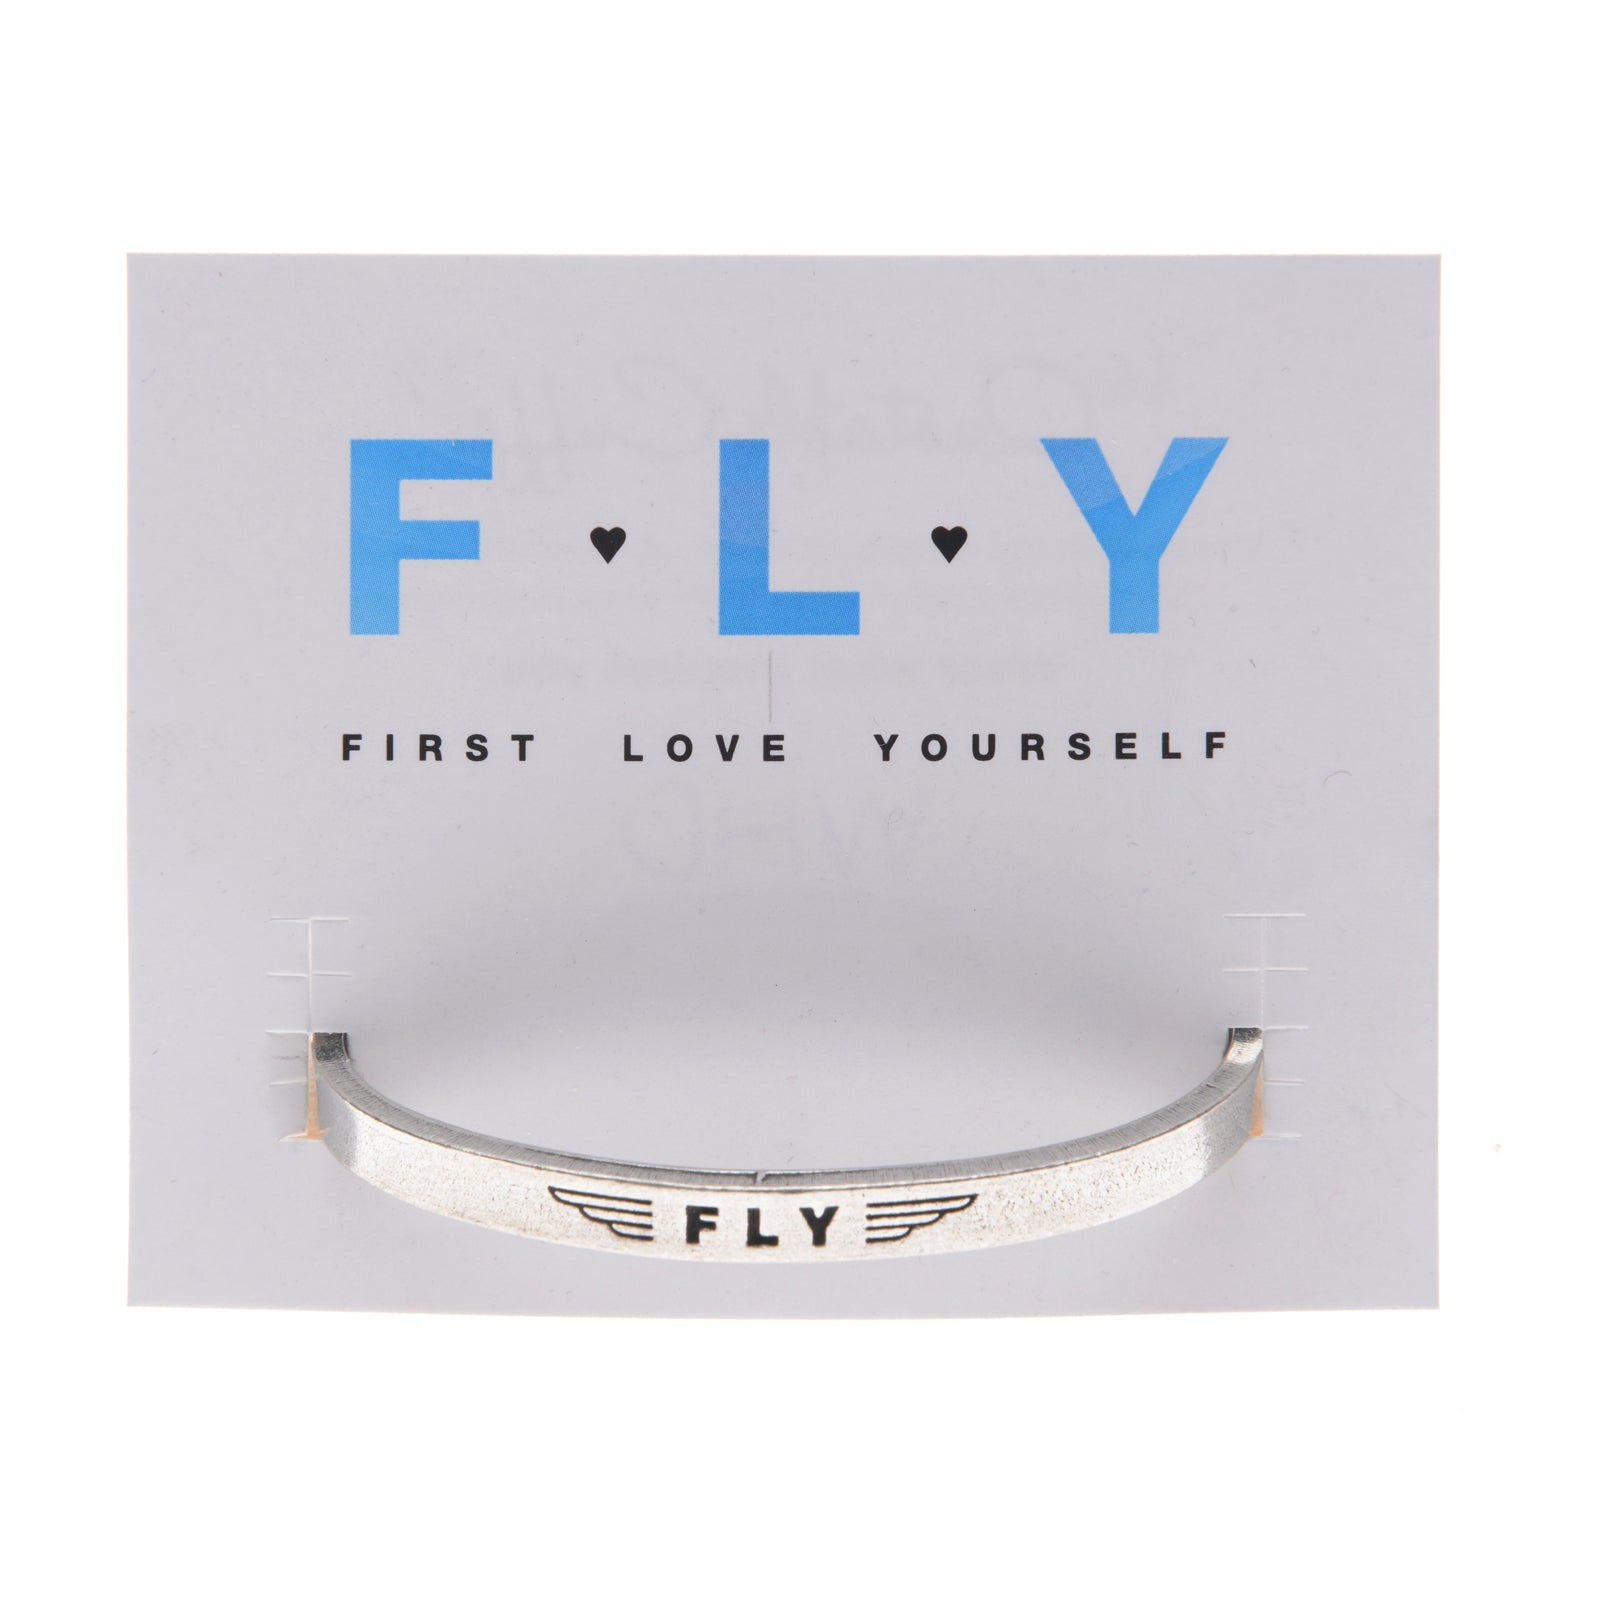 FLY (inside - First Love Yourself) Quotable Cuff - Whitney Howard Designs